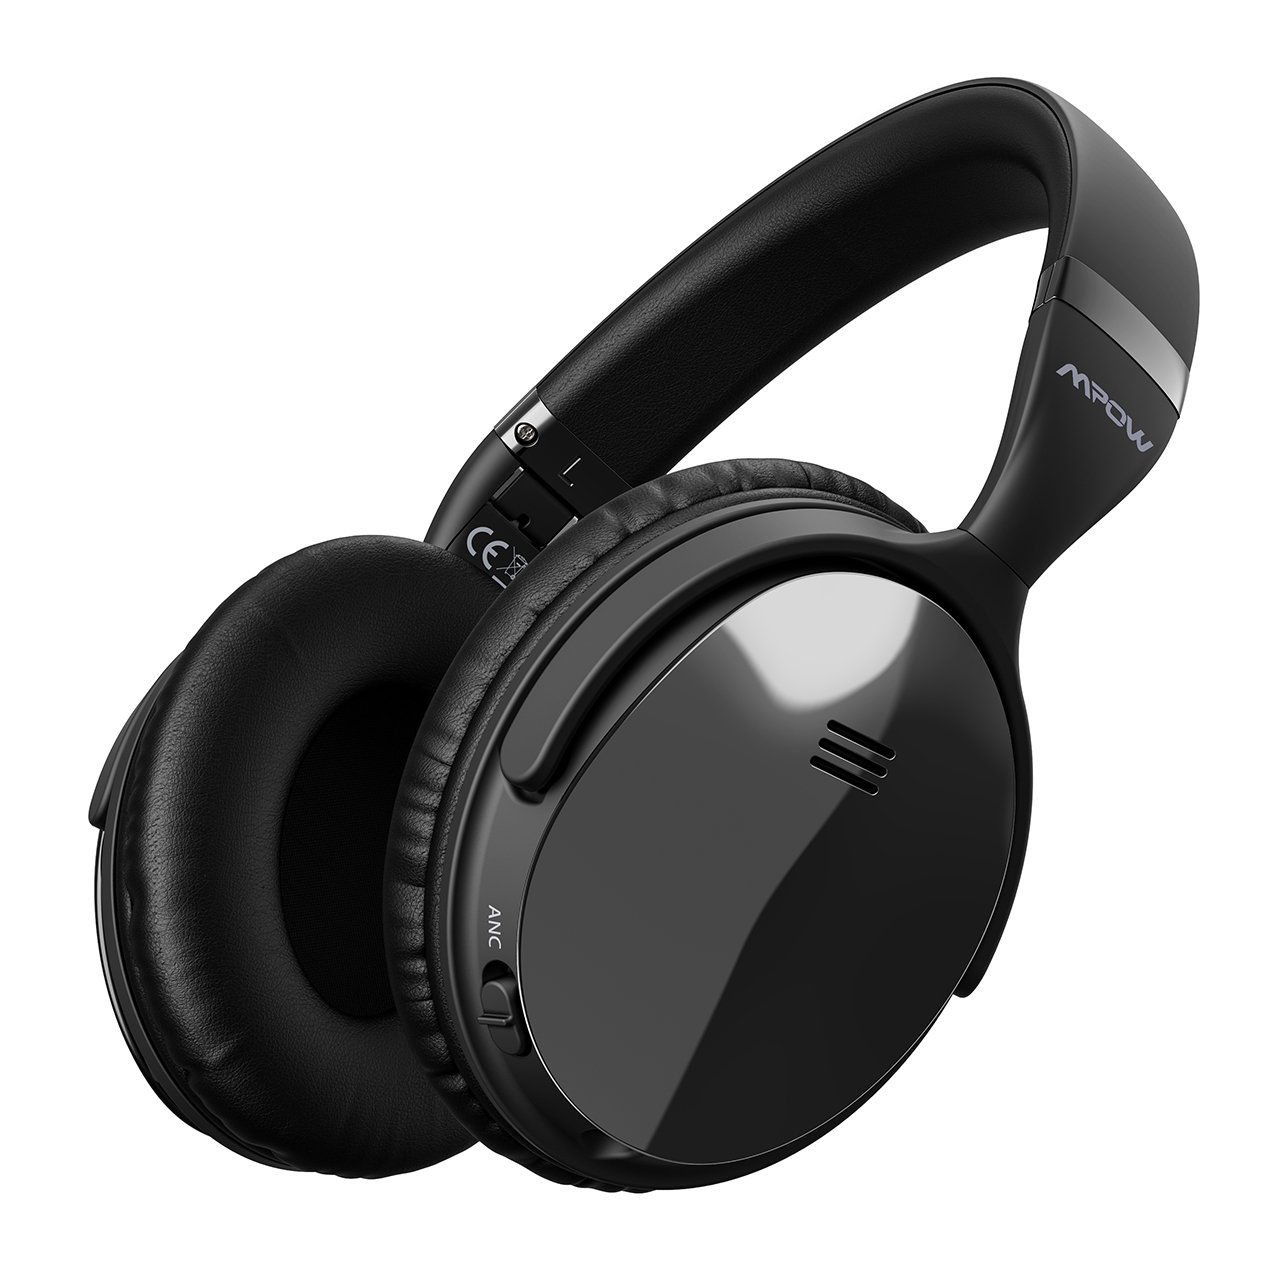 Mpow H5 [Upgrade] Active Noise Cancelling Headphones, ANC Over Ear Bluetooth Wireless Headphones with Mic, Comfortable Protein Earpads, Hands-Free Call, 30 Hours Playtime for Travel Work Computer Home by Mpow